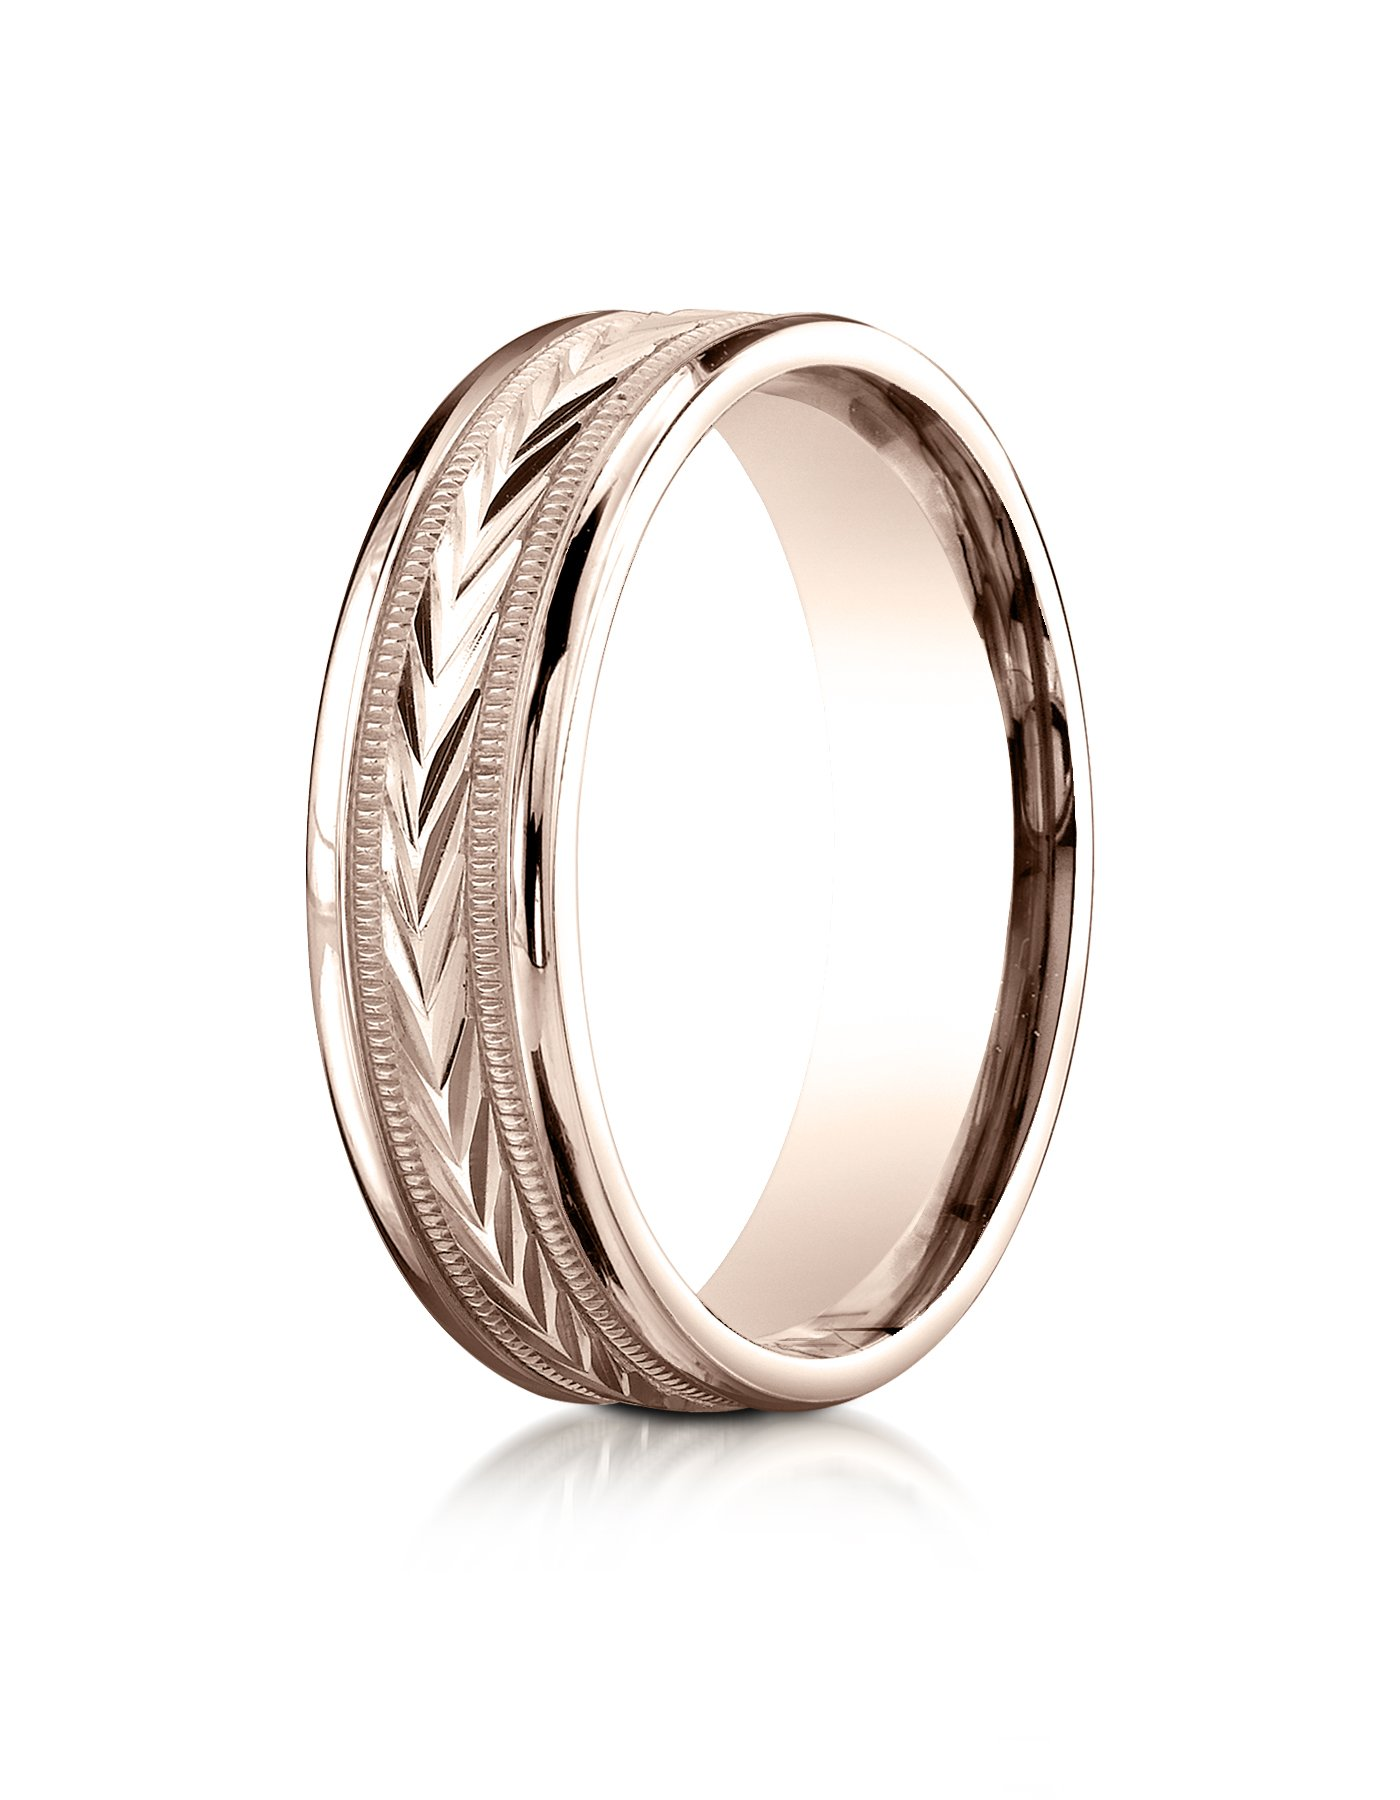 14k Rose Gold 6mm Comfort-Fit Harvest of Love Round Edge Carved Design Wedding Band Ring for Men & Women Size 4 to 15